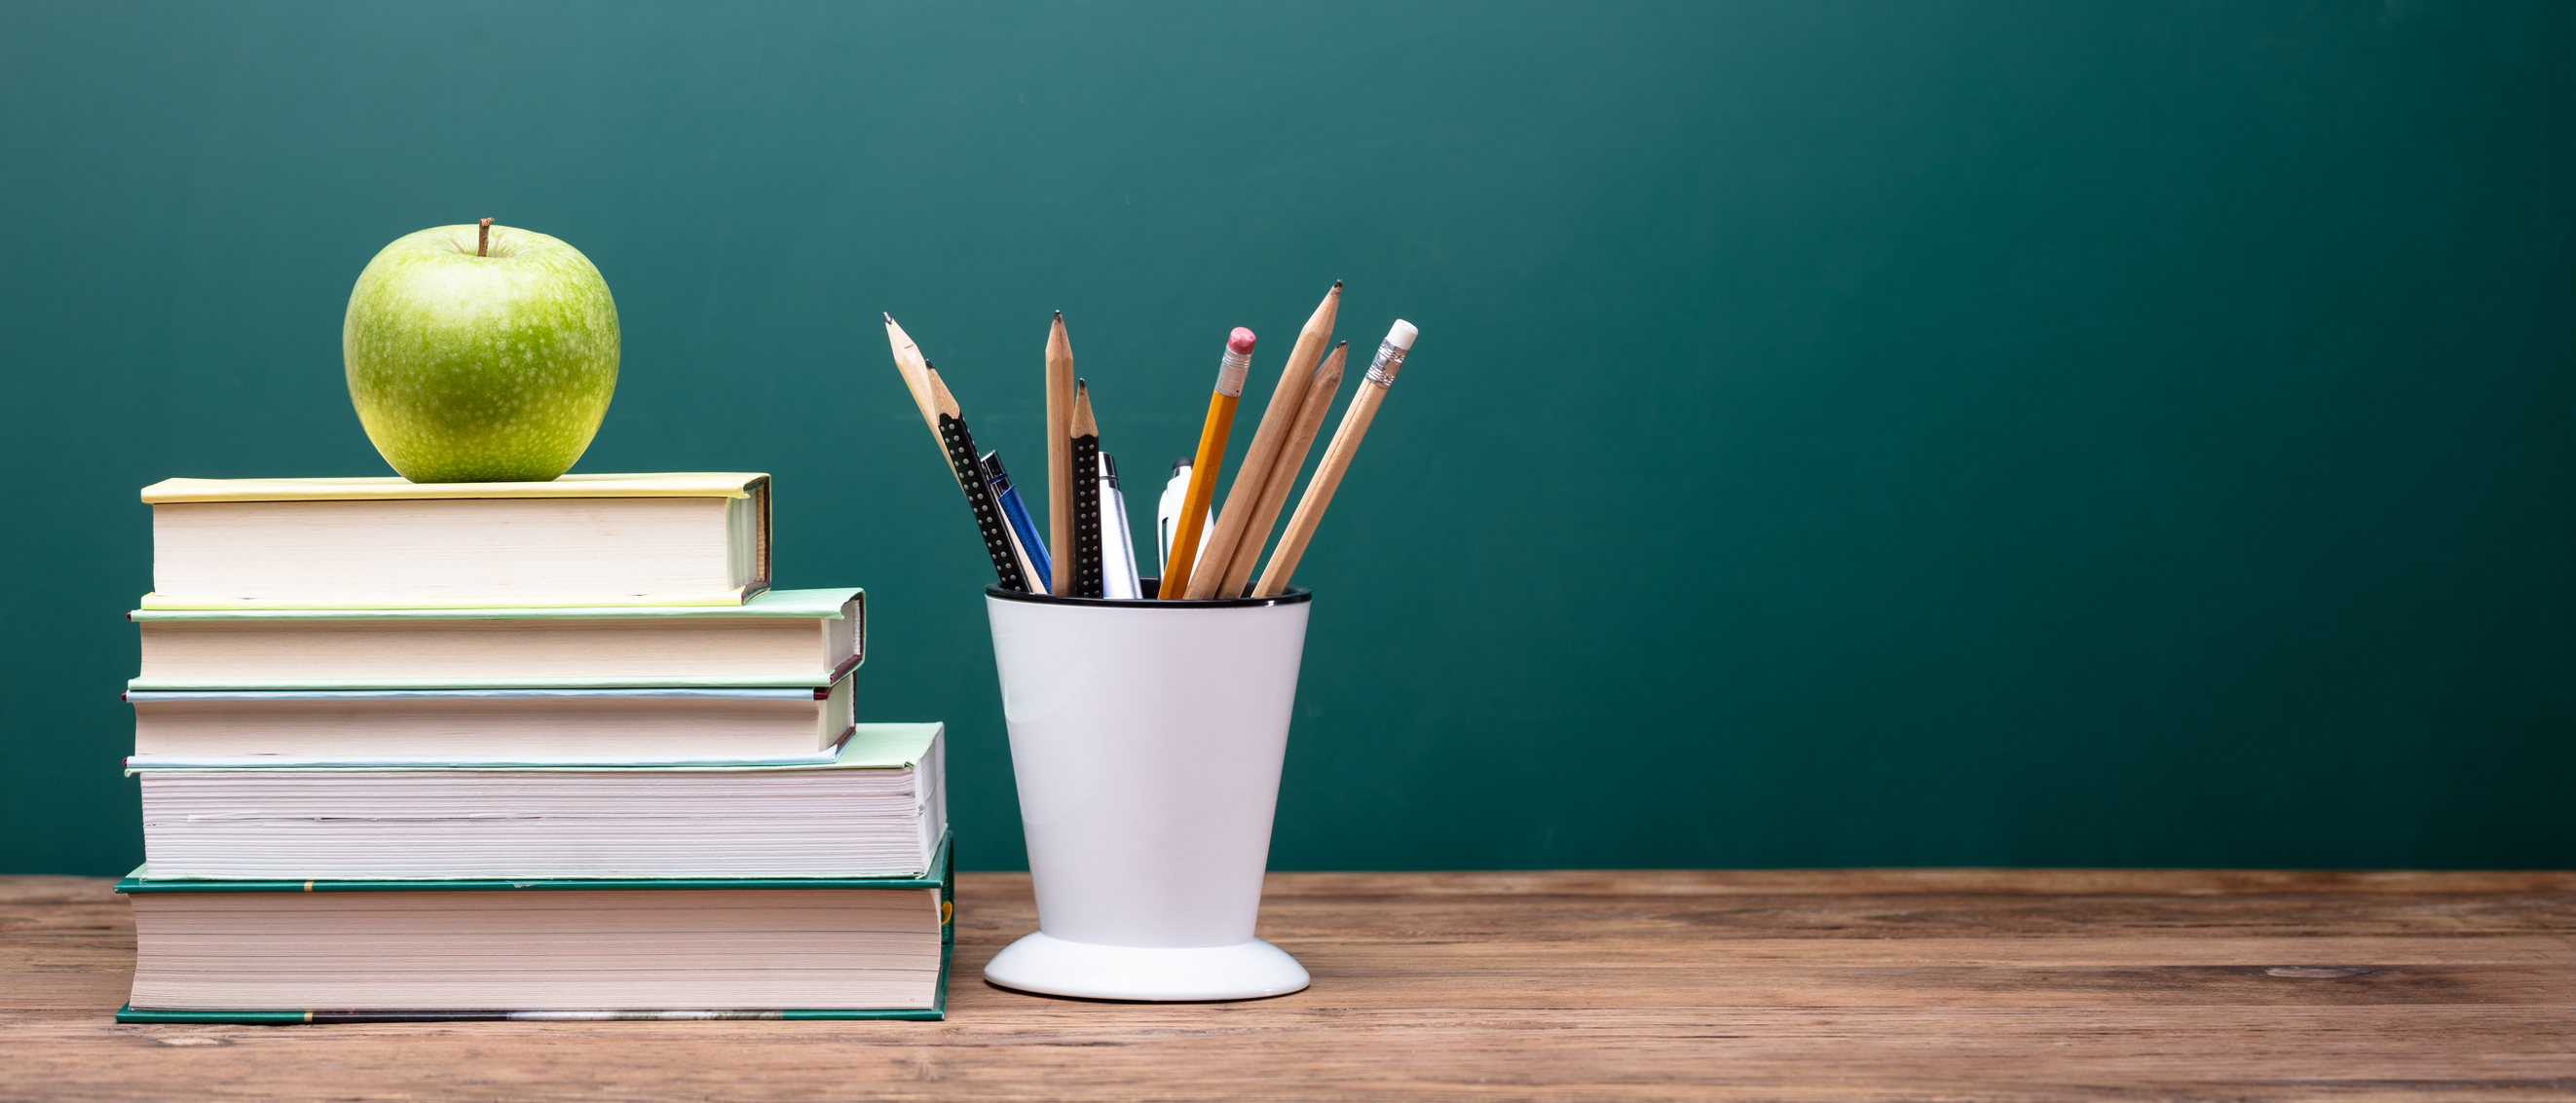 A stack of books with an apple and container with pens on a desk